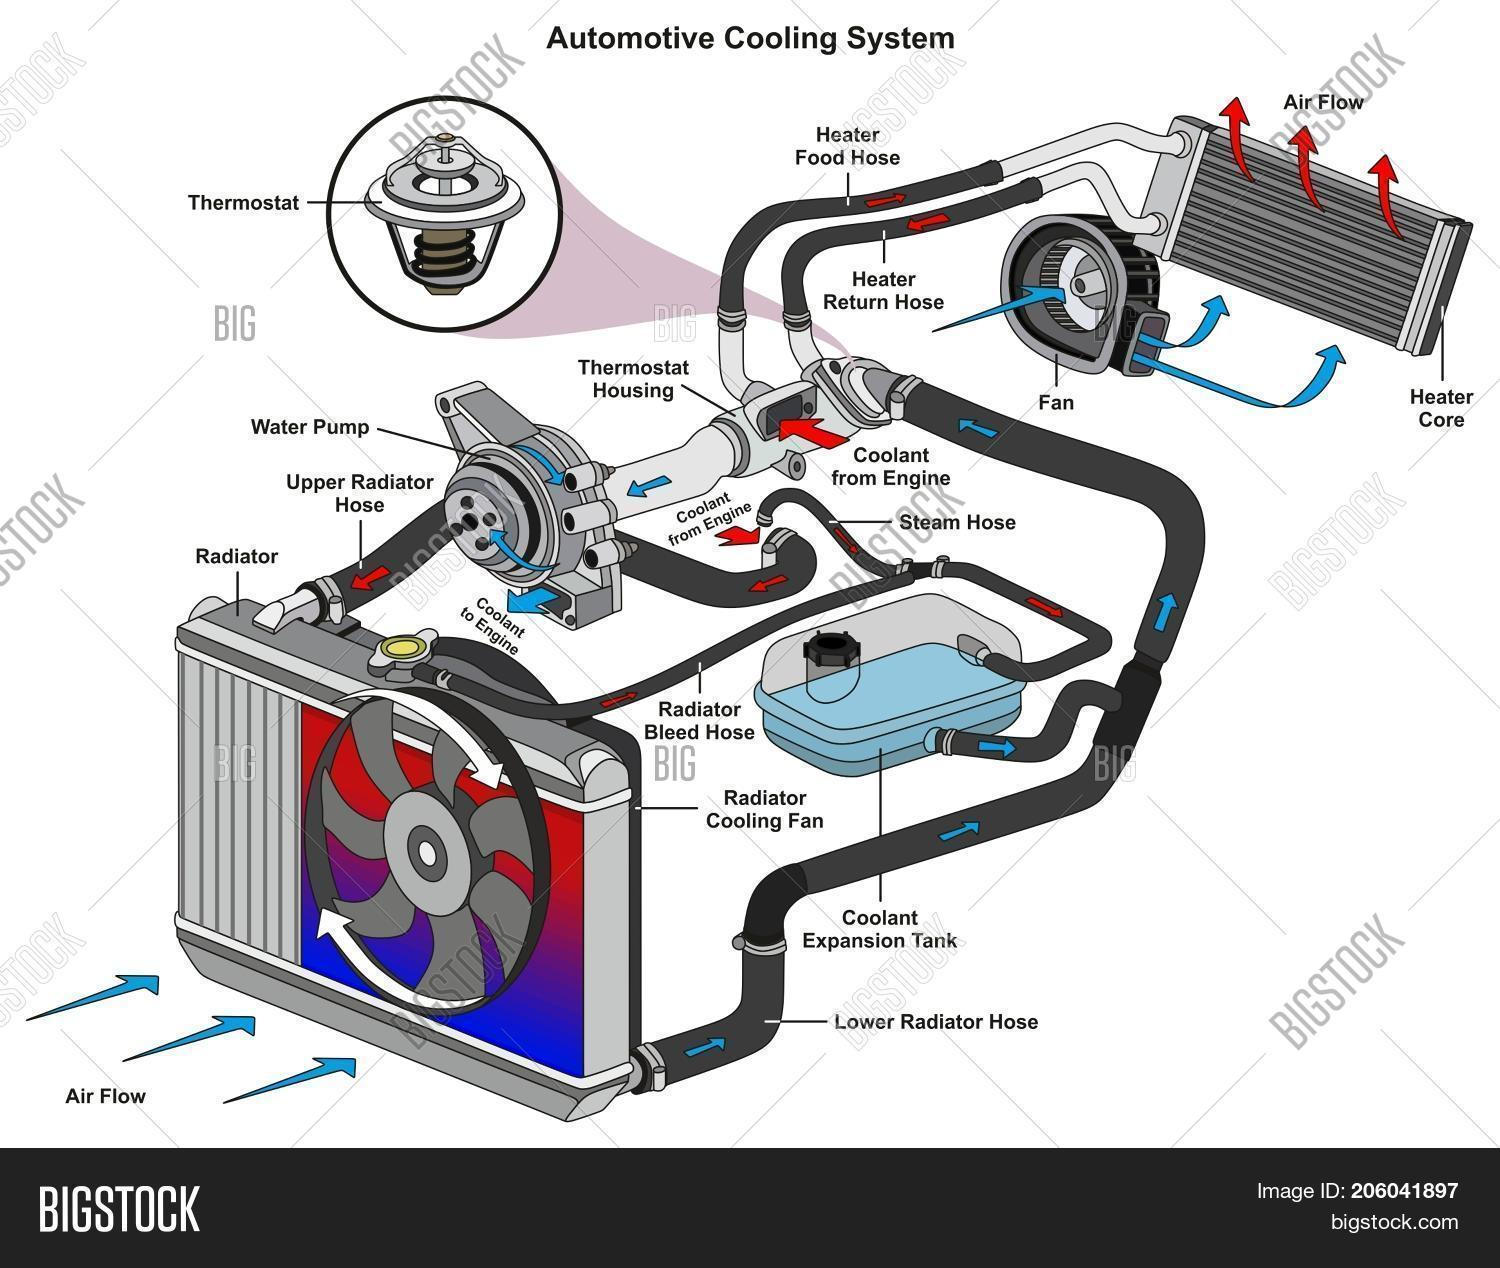 2001 Ford F 150 Heater Fan Wiring Diagrams Automotive Cooling Image Amp Photo Free Trial Bigstock